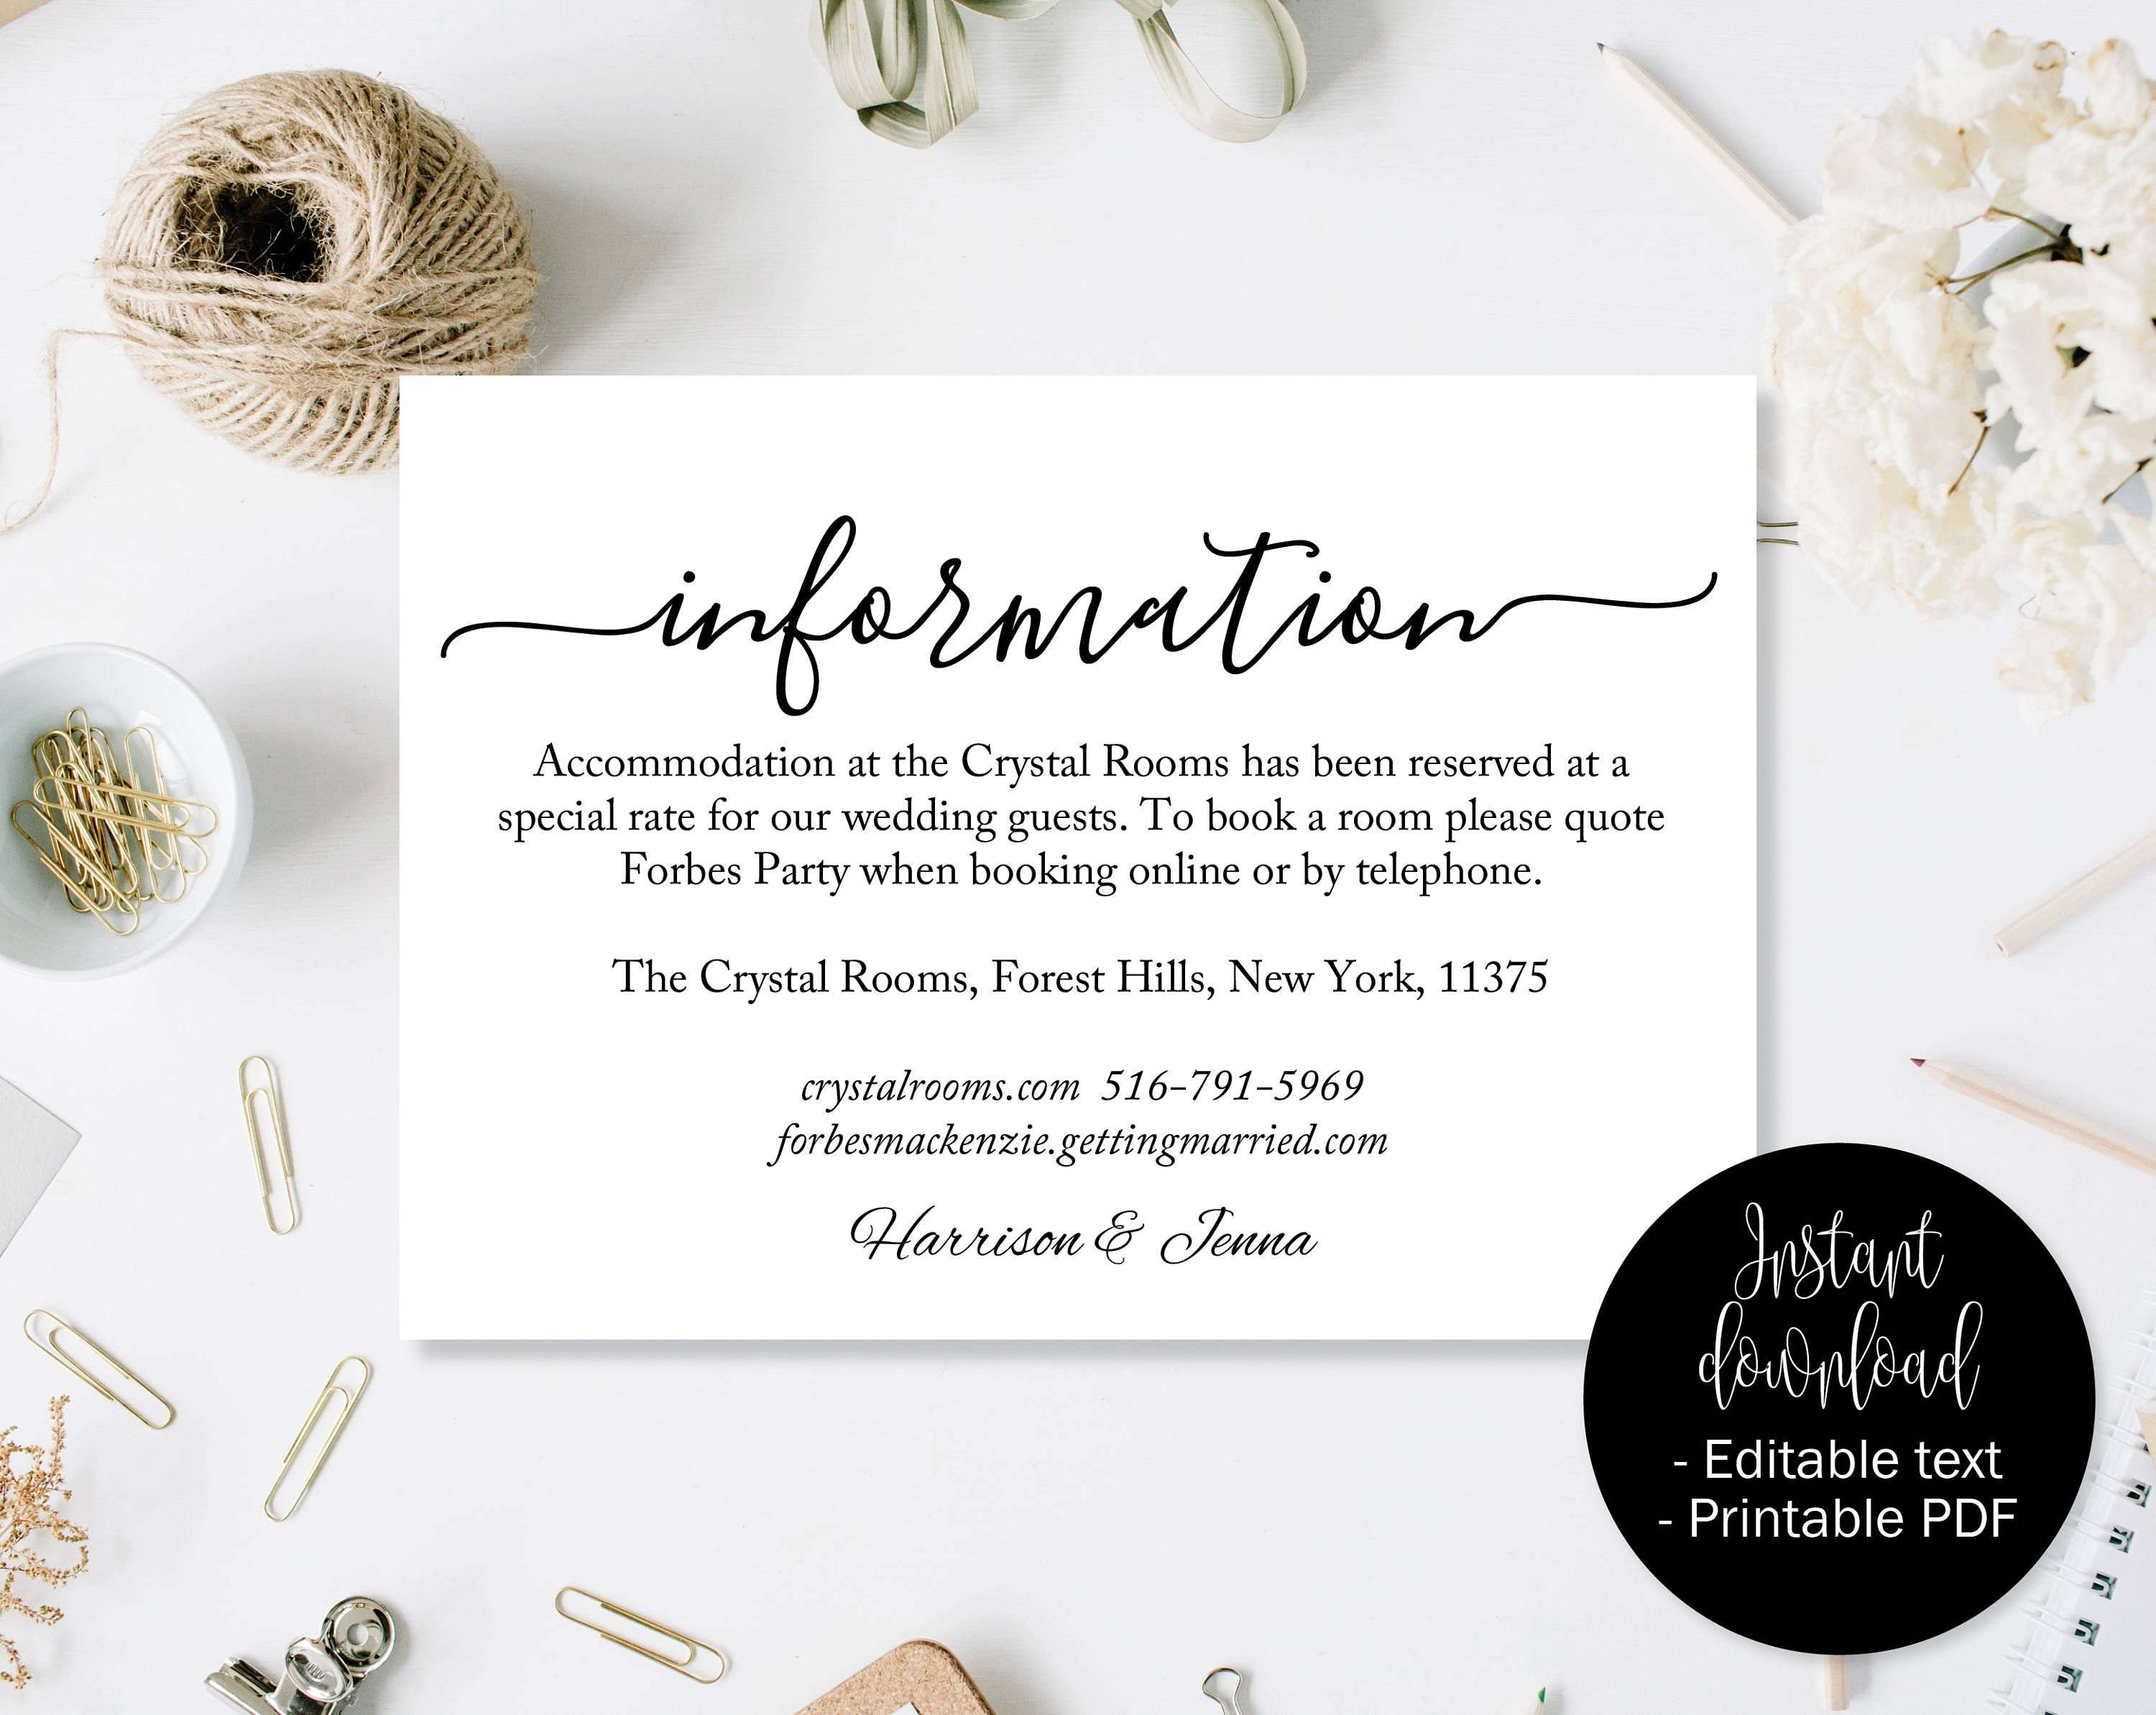 Wedding Guest Details Template Wedding Guest Accommodation Etsy Wedding Cards Accommodations Card Wedding Templates